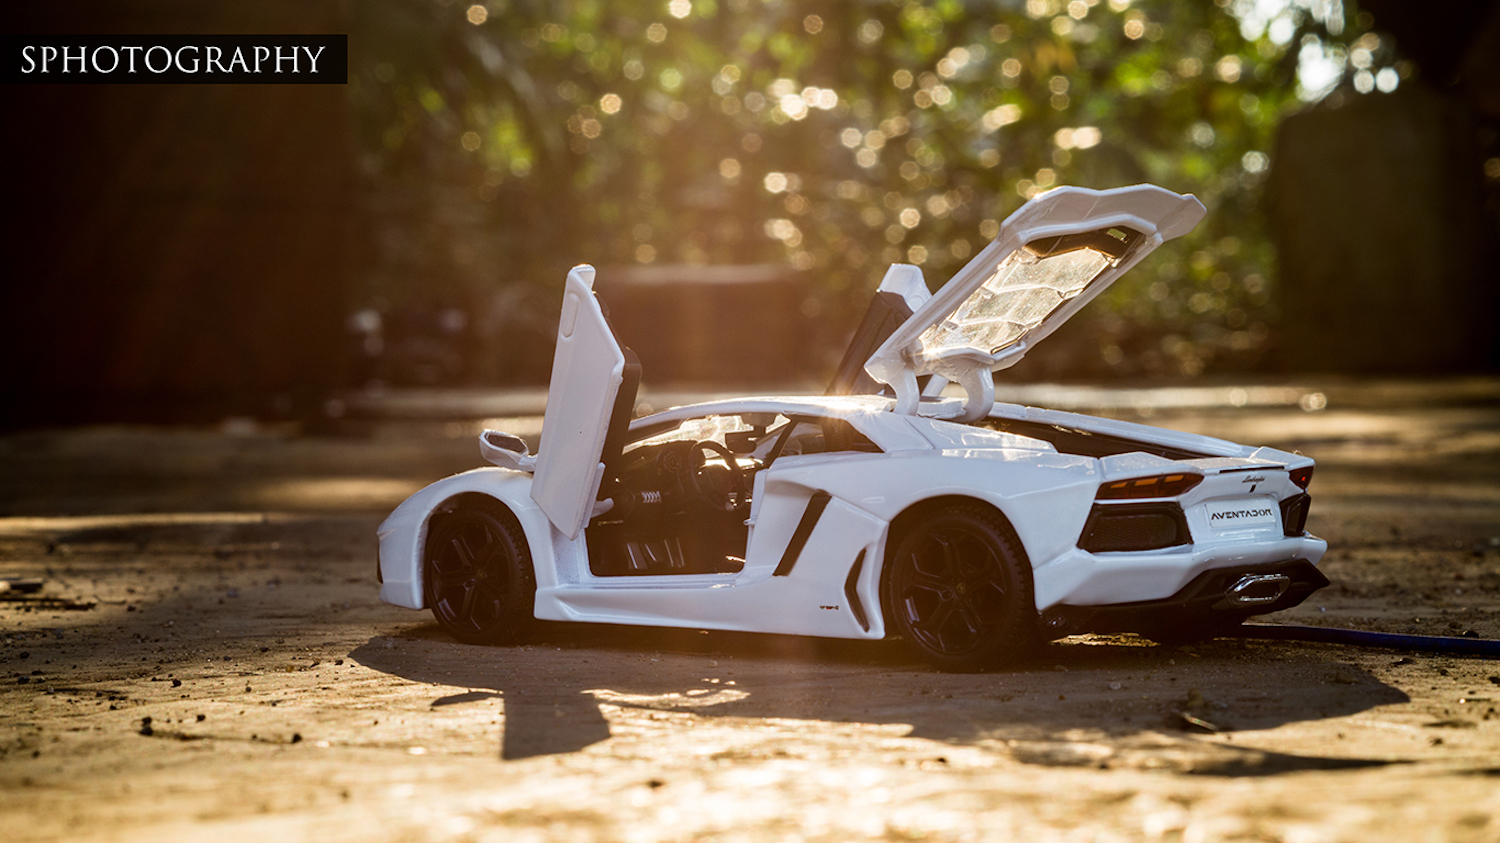 Scale Model Car Photography Insight